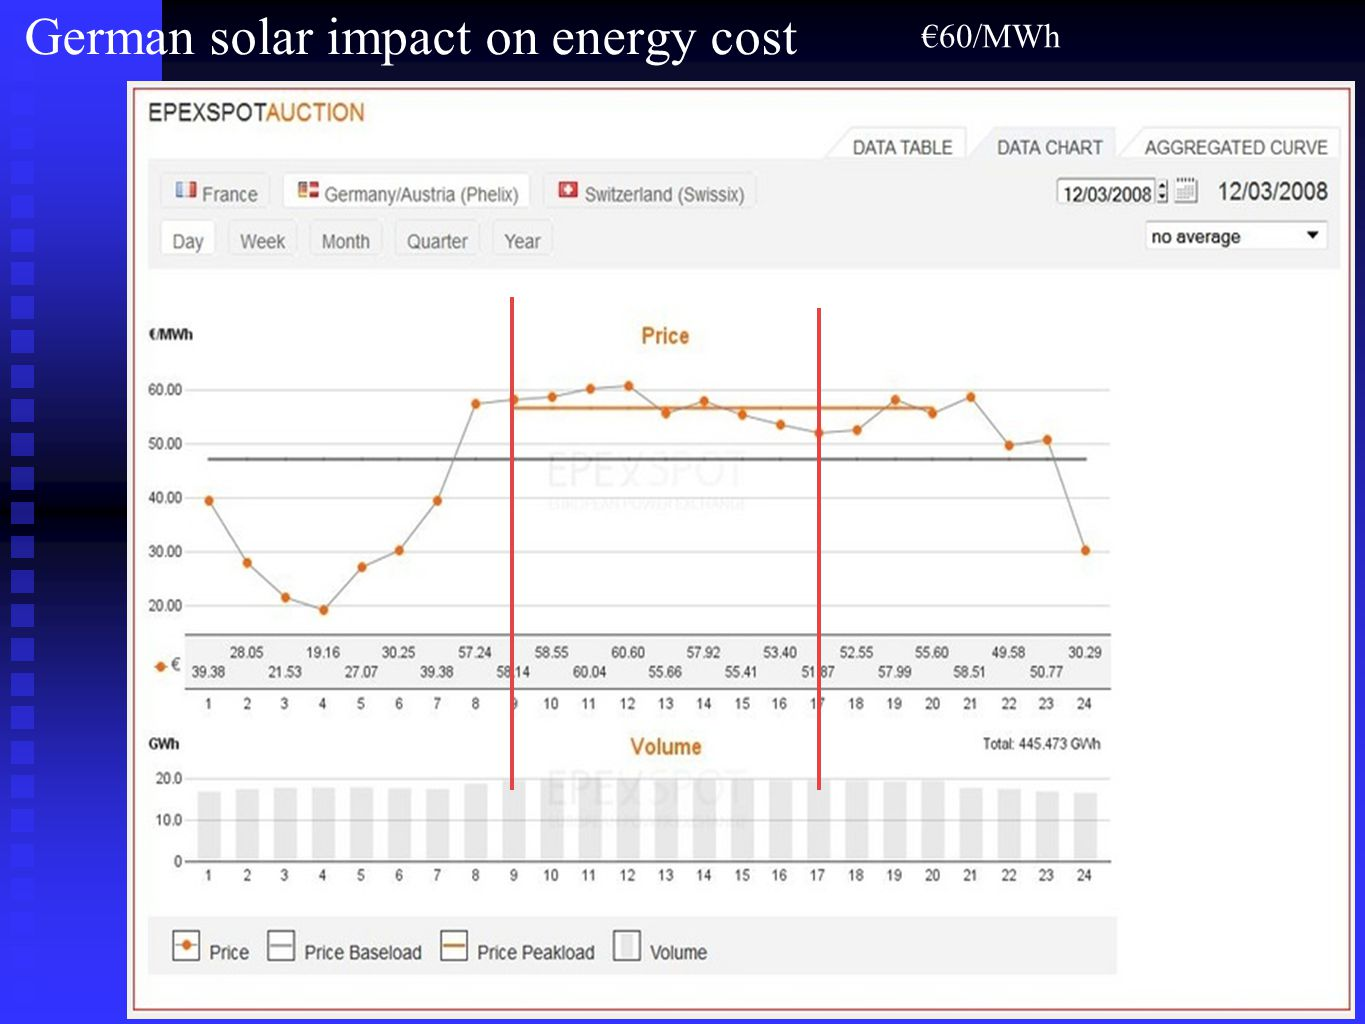 German solar impact on energy cost €60/MWh